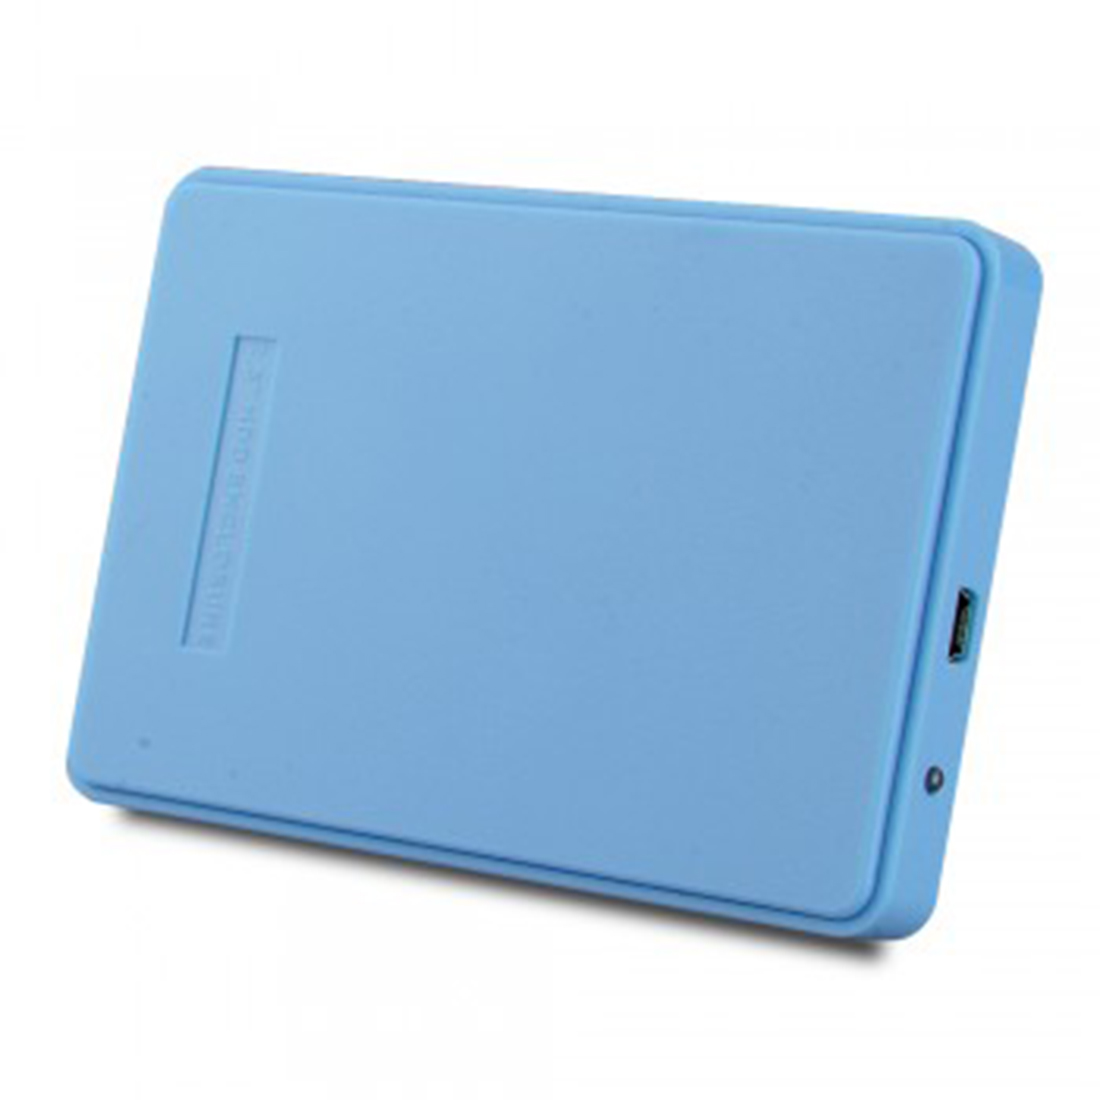 """Remarkable new Blue External Enclosure for Hard Drive Disk Usb 2.0 Sata Hdd Portable Case 2.5"""" Inch Support 2TB Hard Drive(China (Mainland))"""